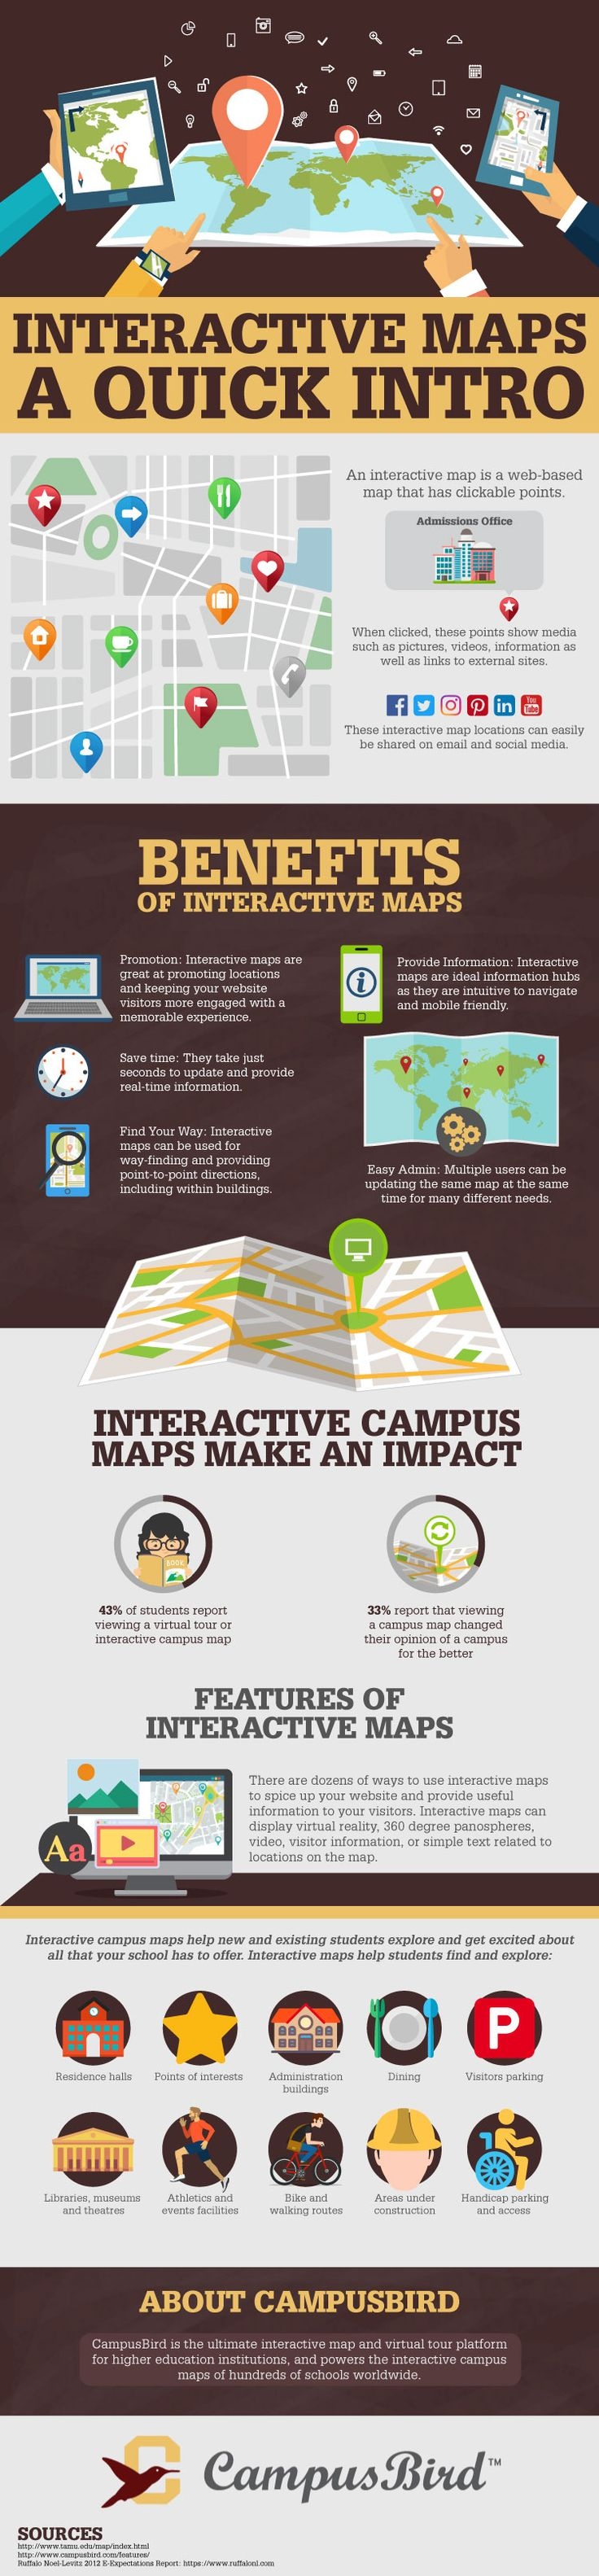 New to interactive maps? Check out this infographic highlighting interactive map benefits and discussing ways digital maps can benefit your college campus.